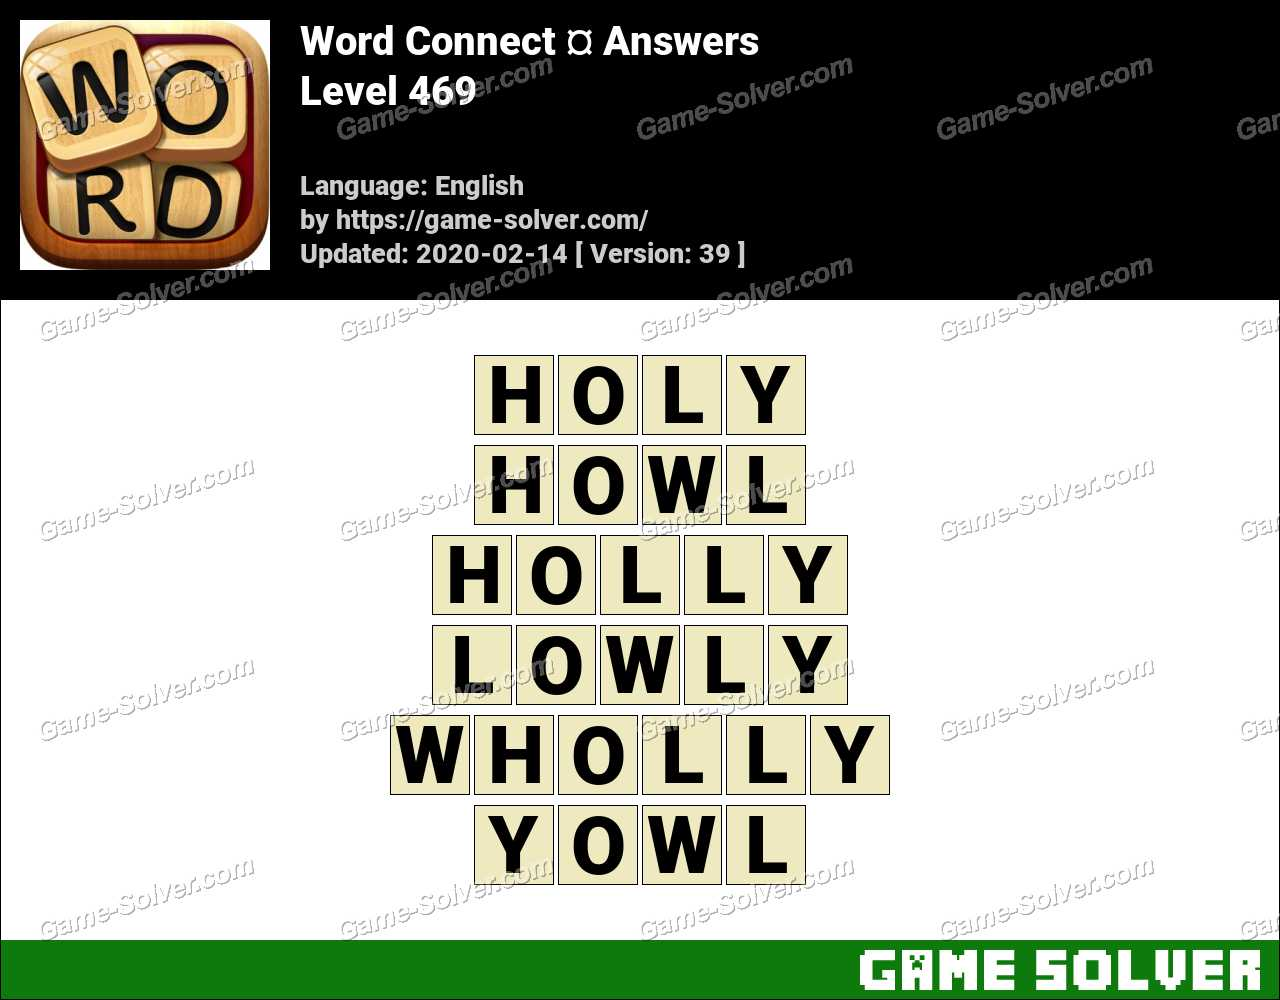 Word Connect Level 469 Answers